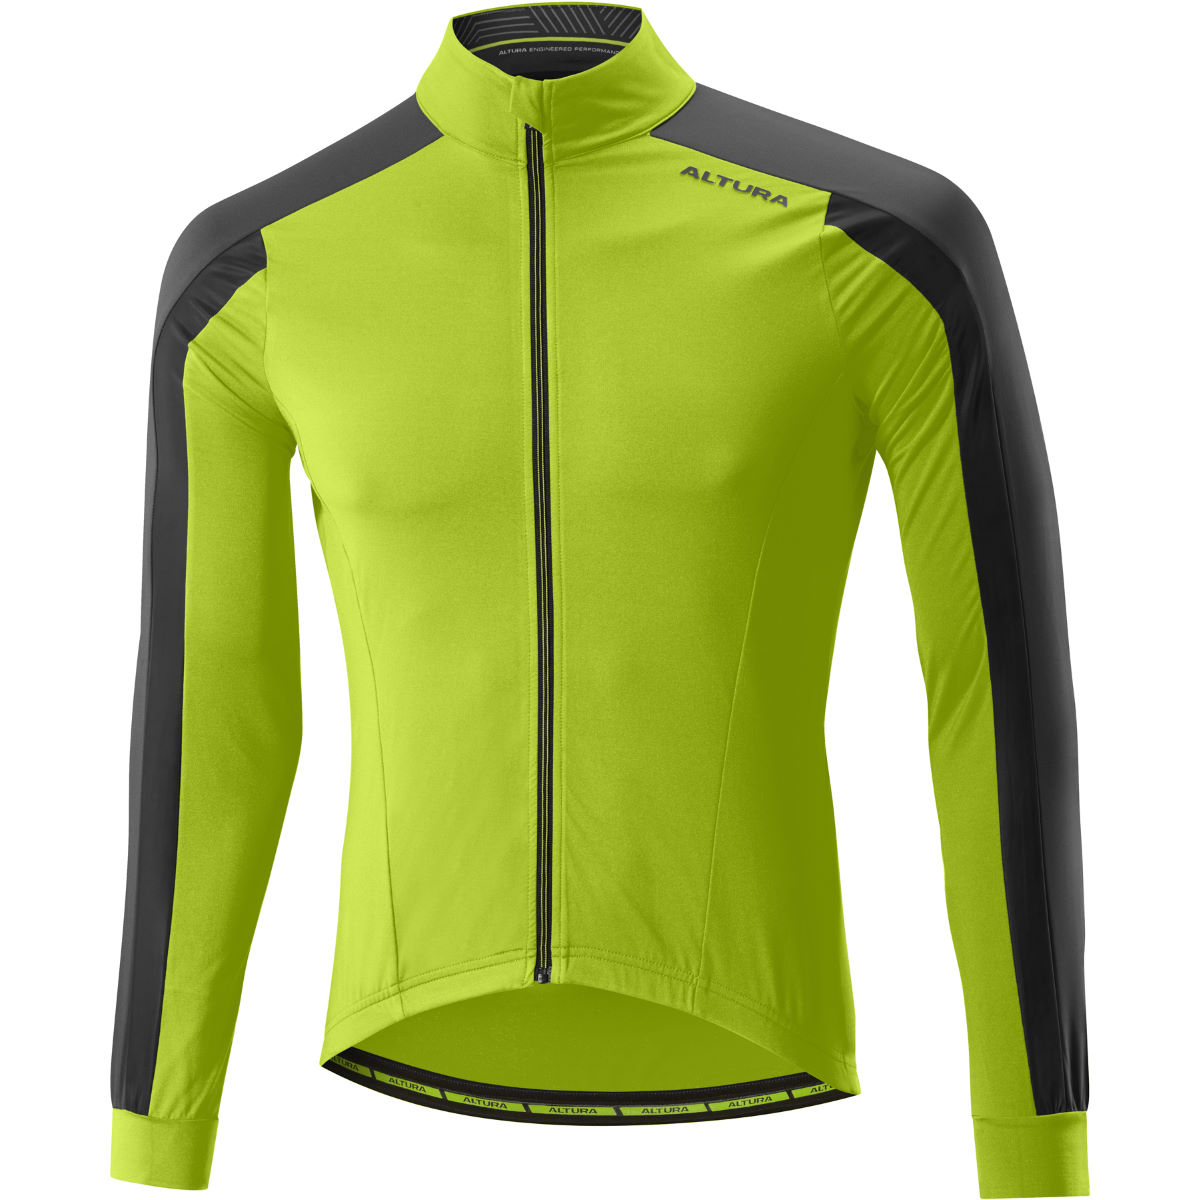 Maillot Altura NV2 Thermo (manches longues) - XL Jaune fluo Maillots